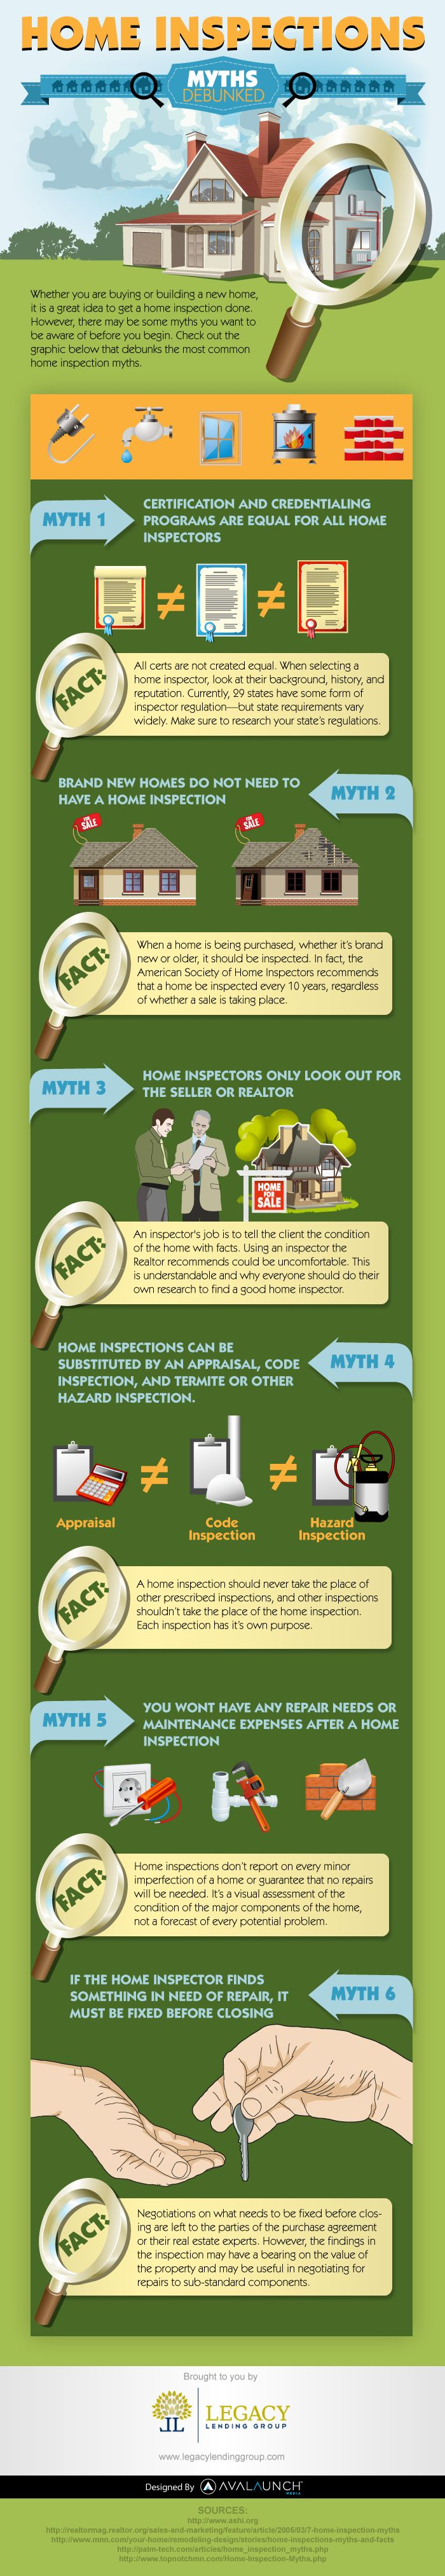 Facts and Myths About Home Inspection